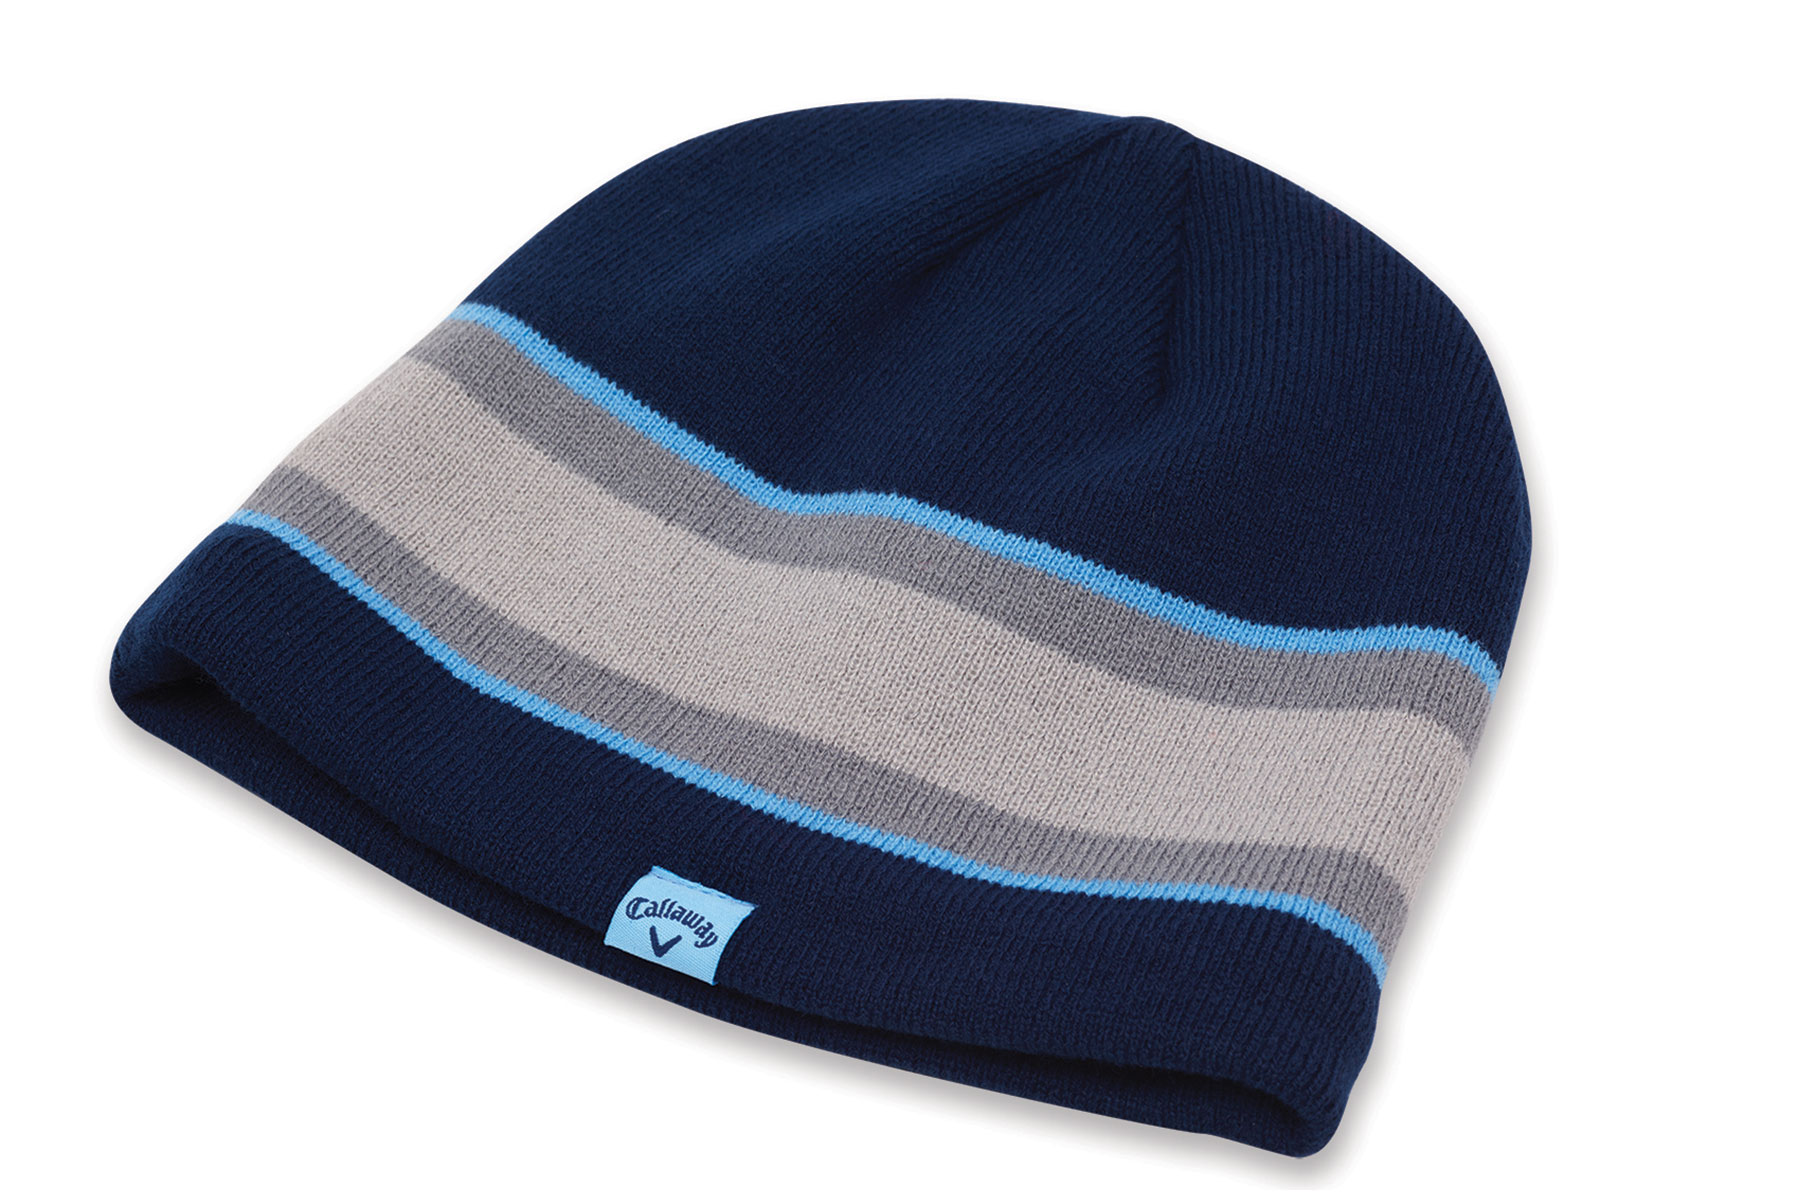 Callaway Golf Winter Chill Beanie 2018